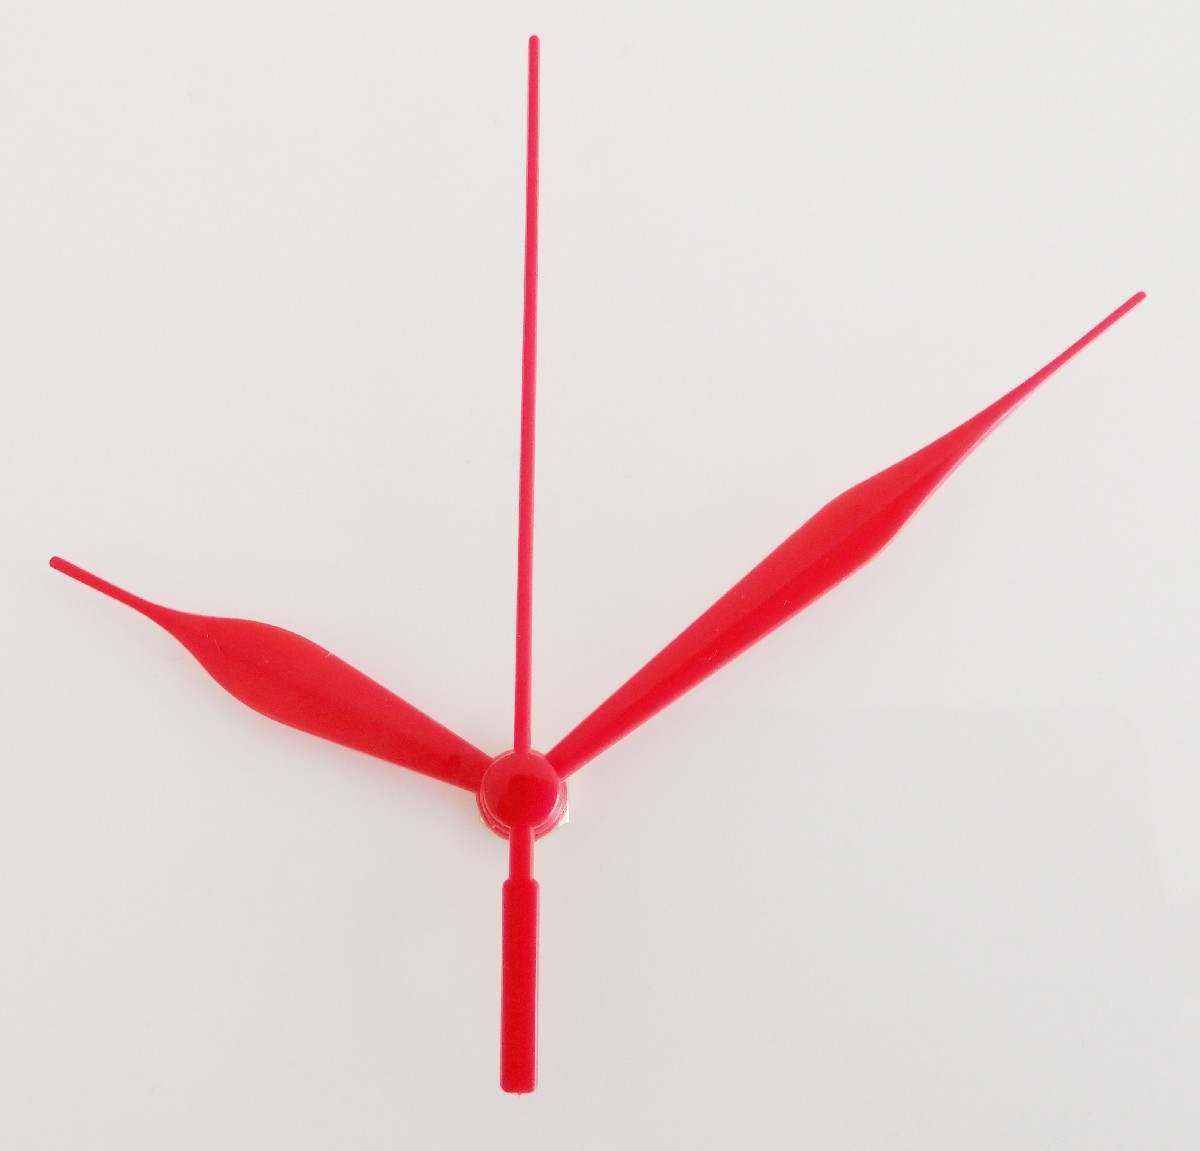 Clock movement with red hands